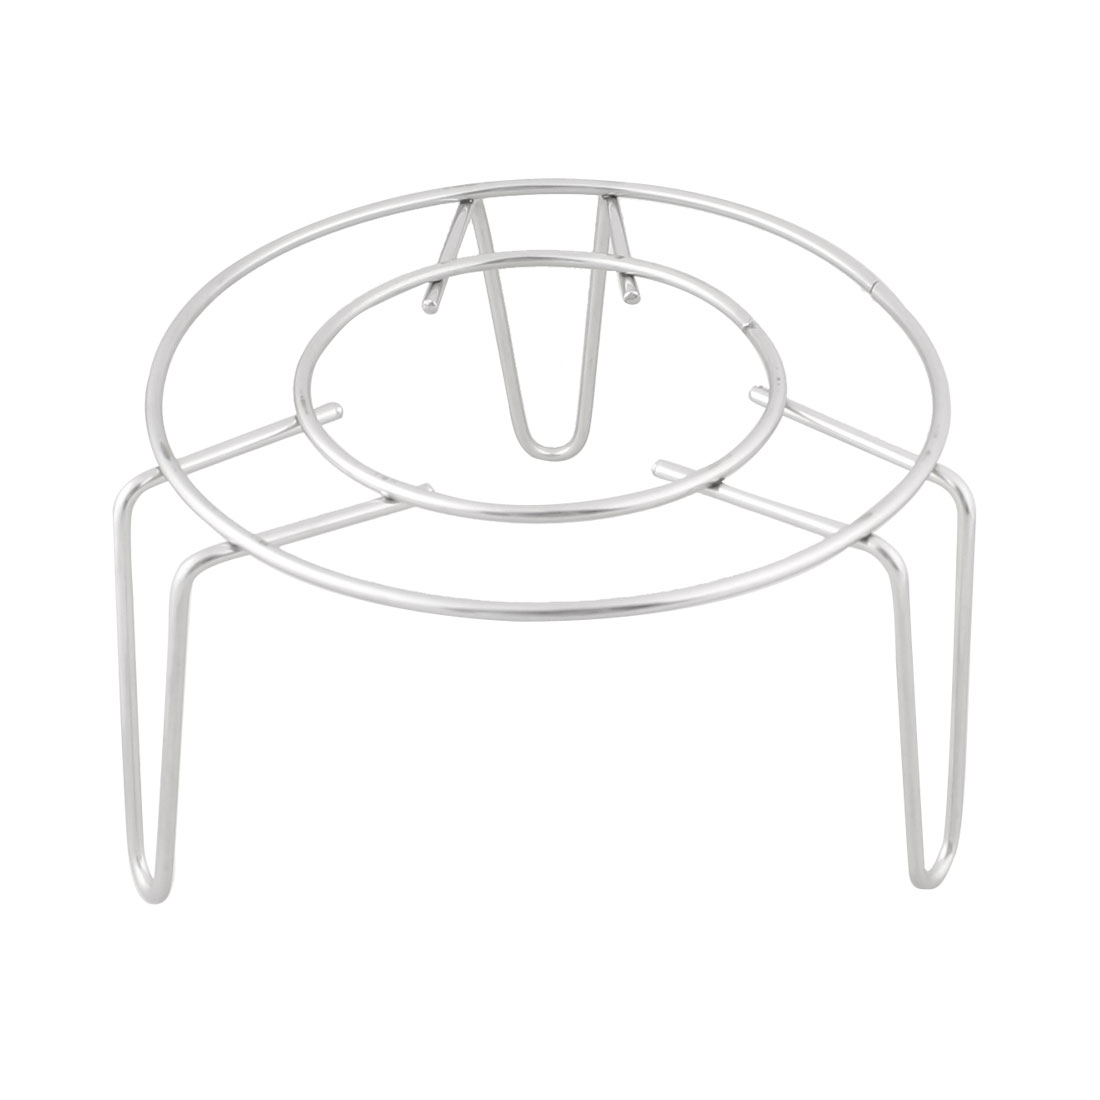 "Household Kitchen Cooking Metal 3"" High Steamer Rack Stand"